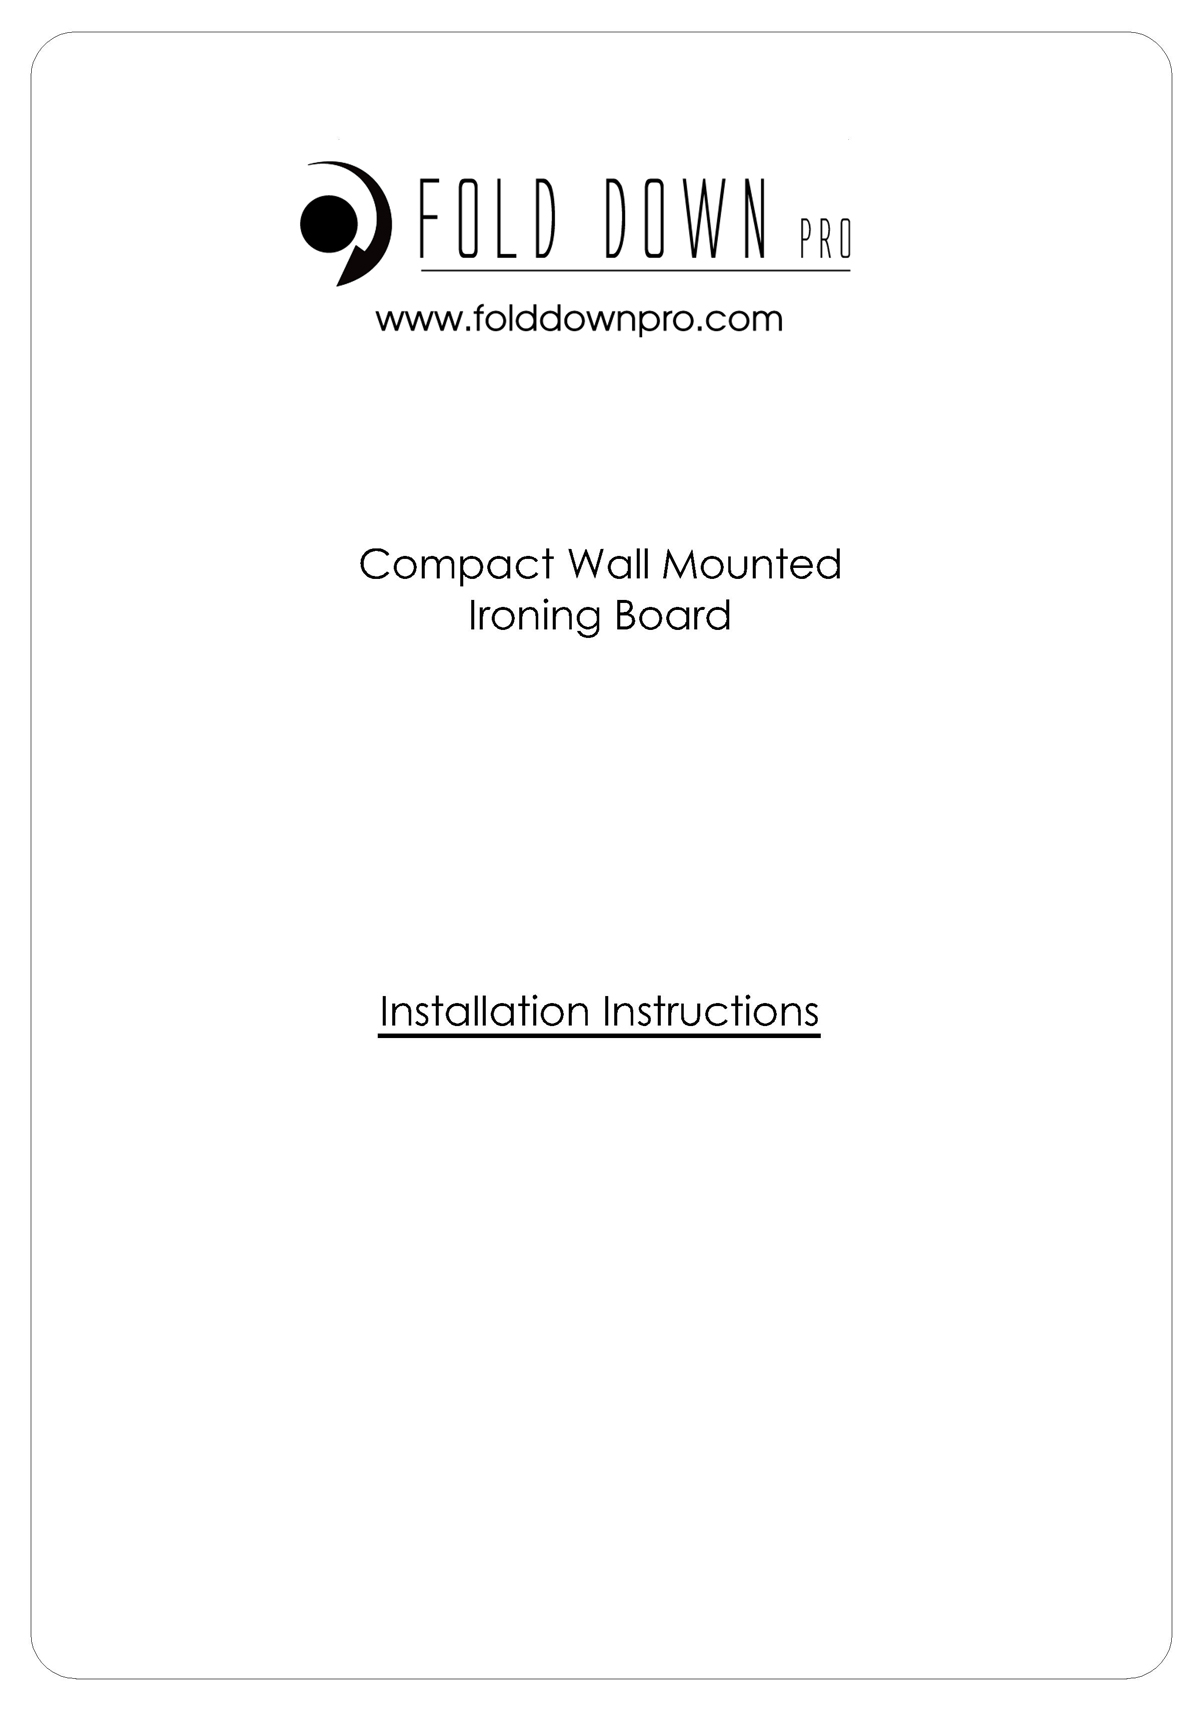 Compact Wall Mounted Ironing Board Installation Instructions